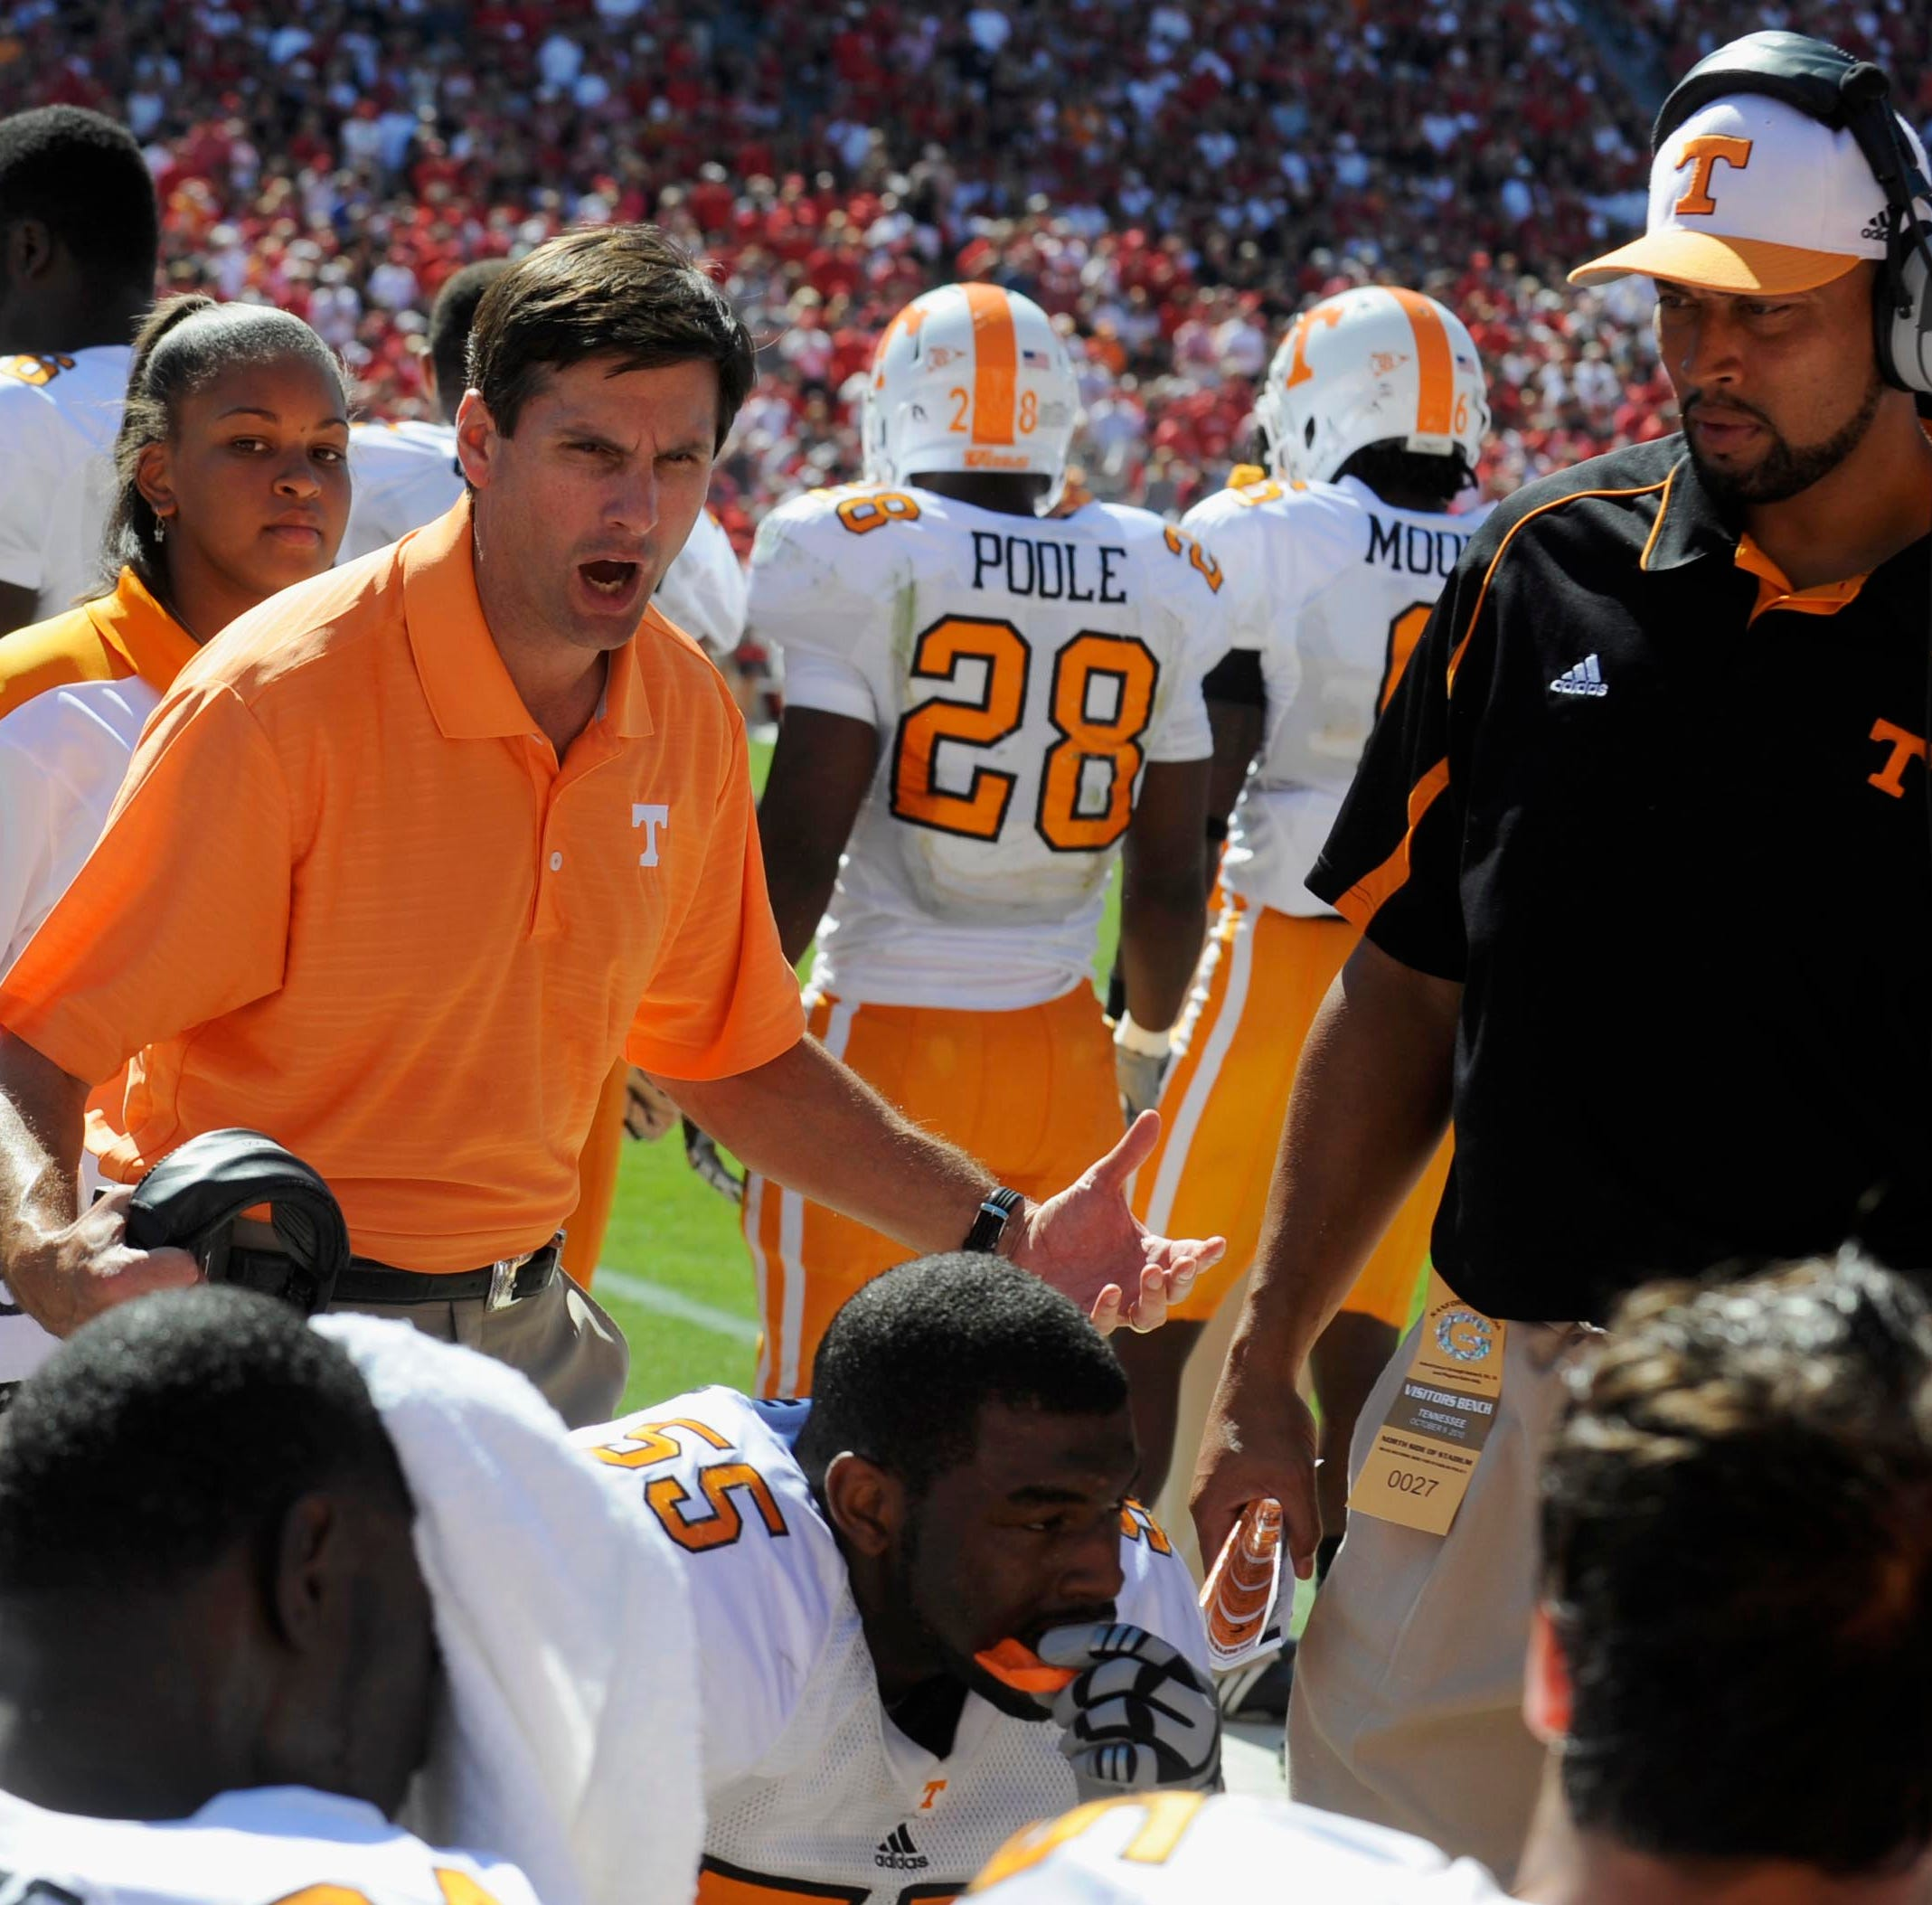 UT Vols football: How Derek Dooley's impact at Tennessee lasts through VFL program